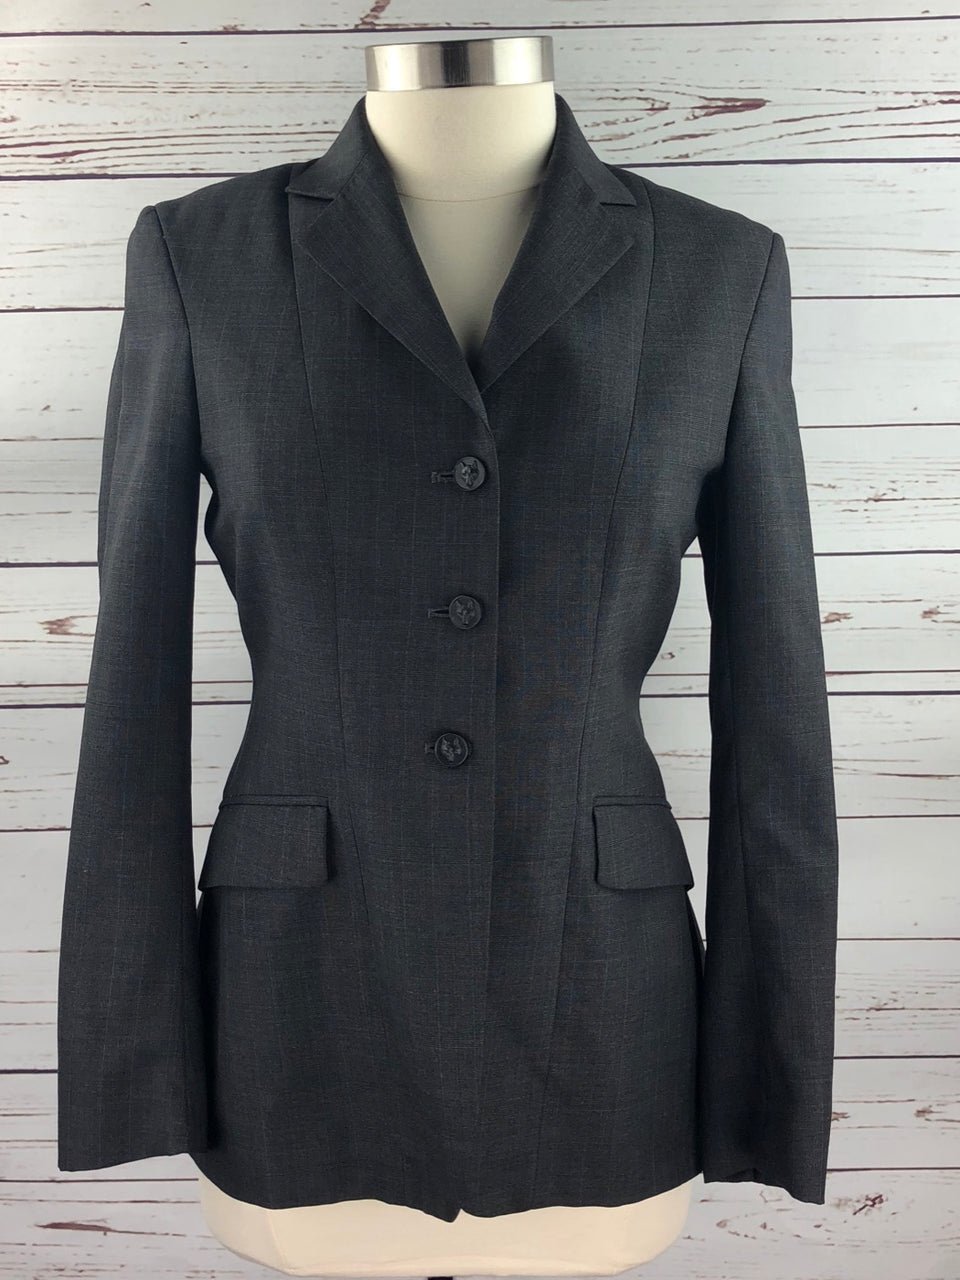 Heythrop Hunt Coat in Charcoal Plaid - Women's 12 (US 6 Slim)